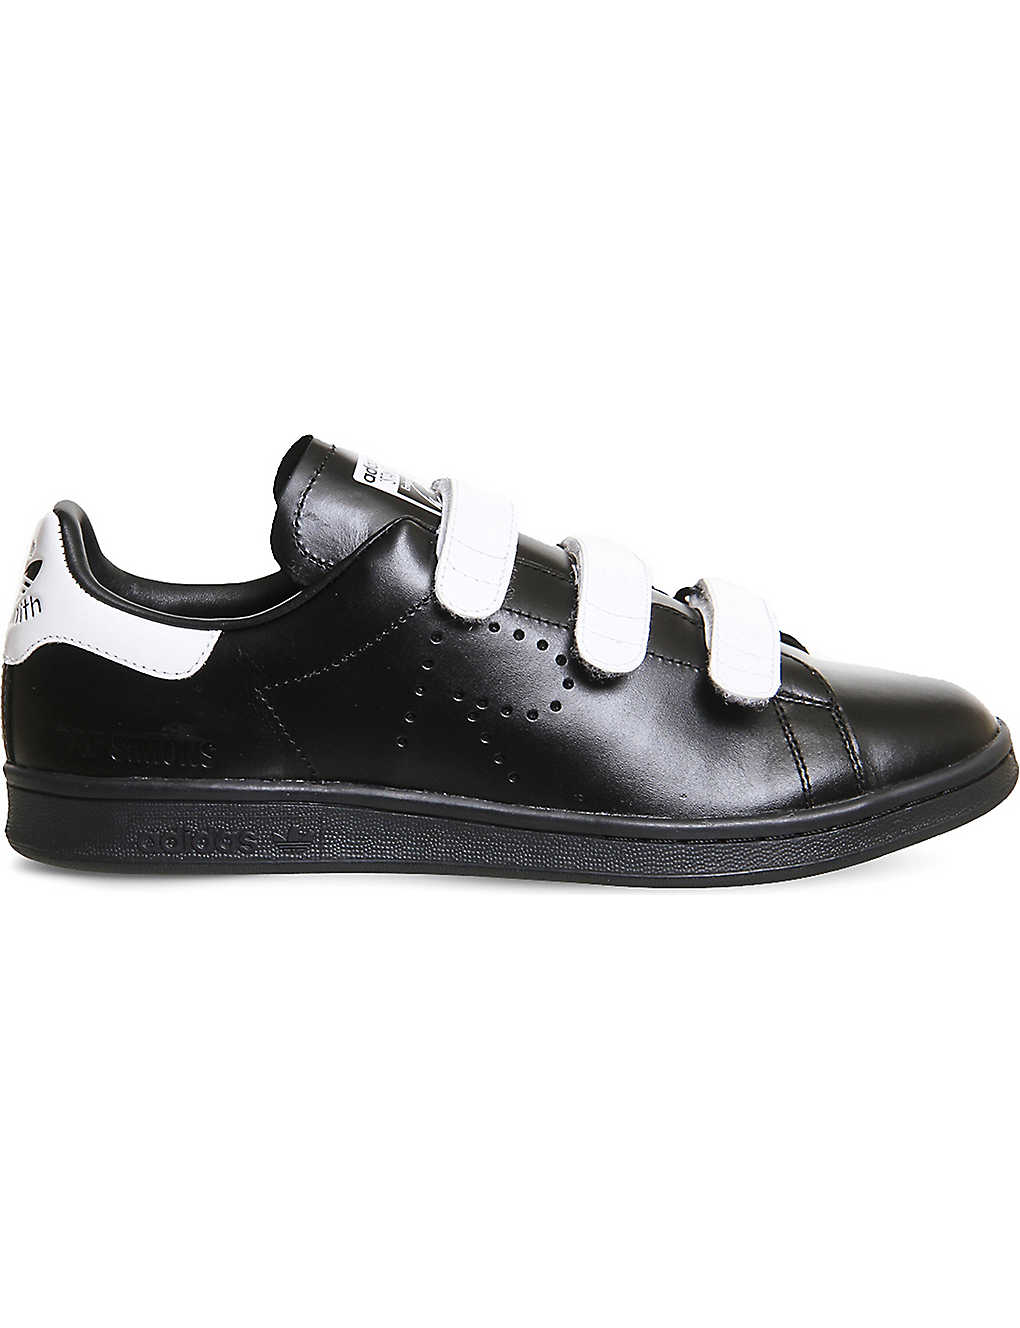 18357293e0a ADIDAS X RAF SIMONS - Raf x Stan Smith CF leather trainers ...